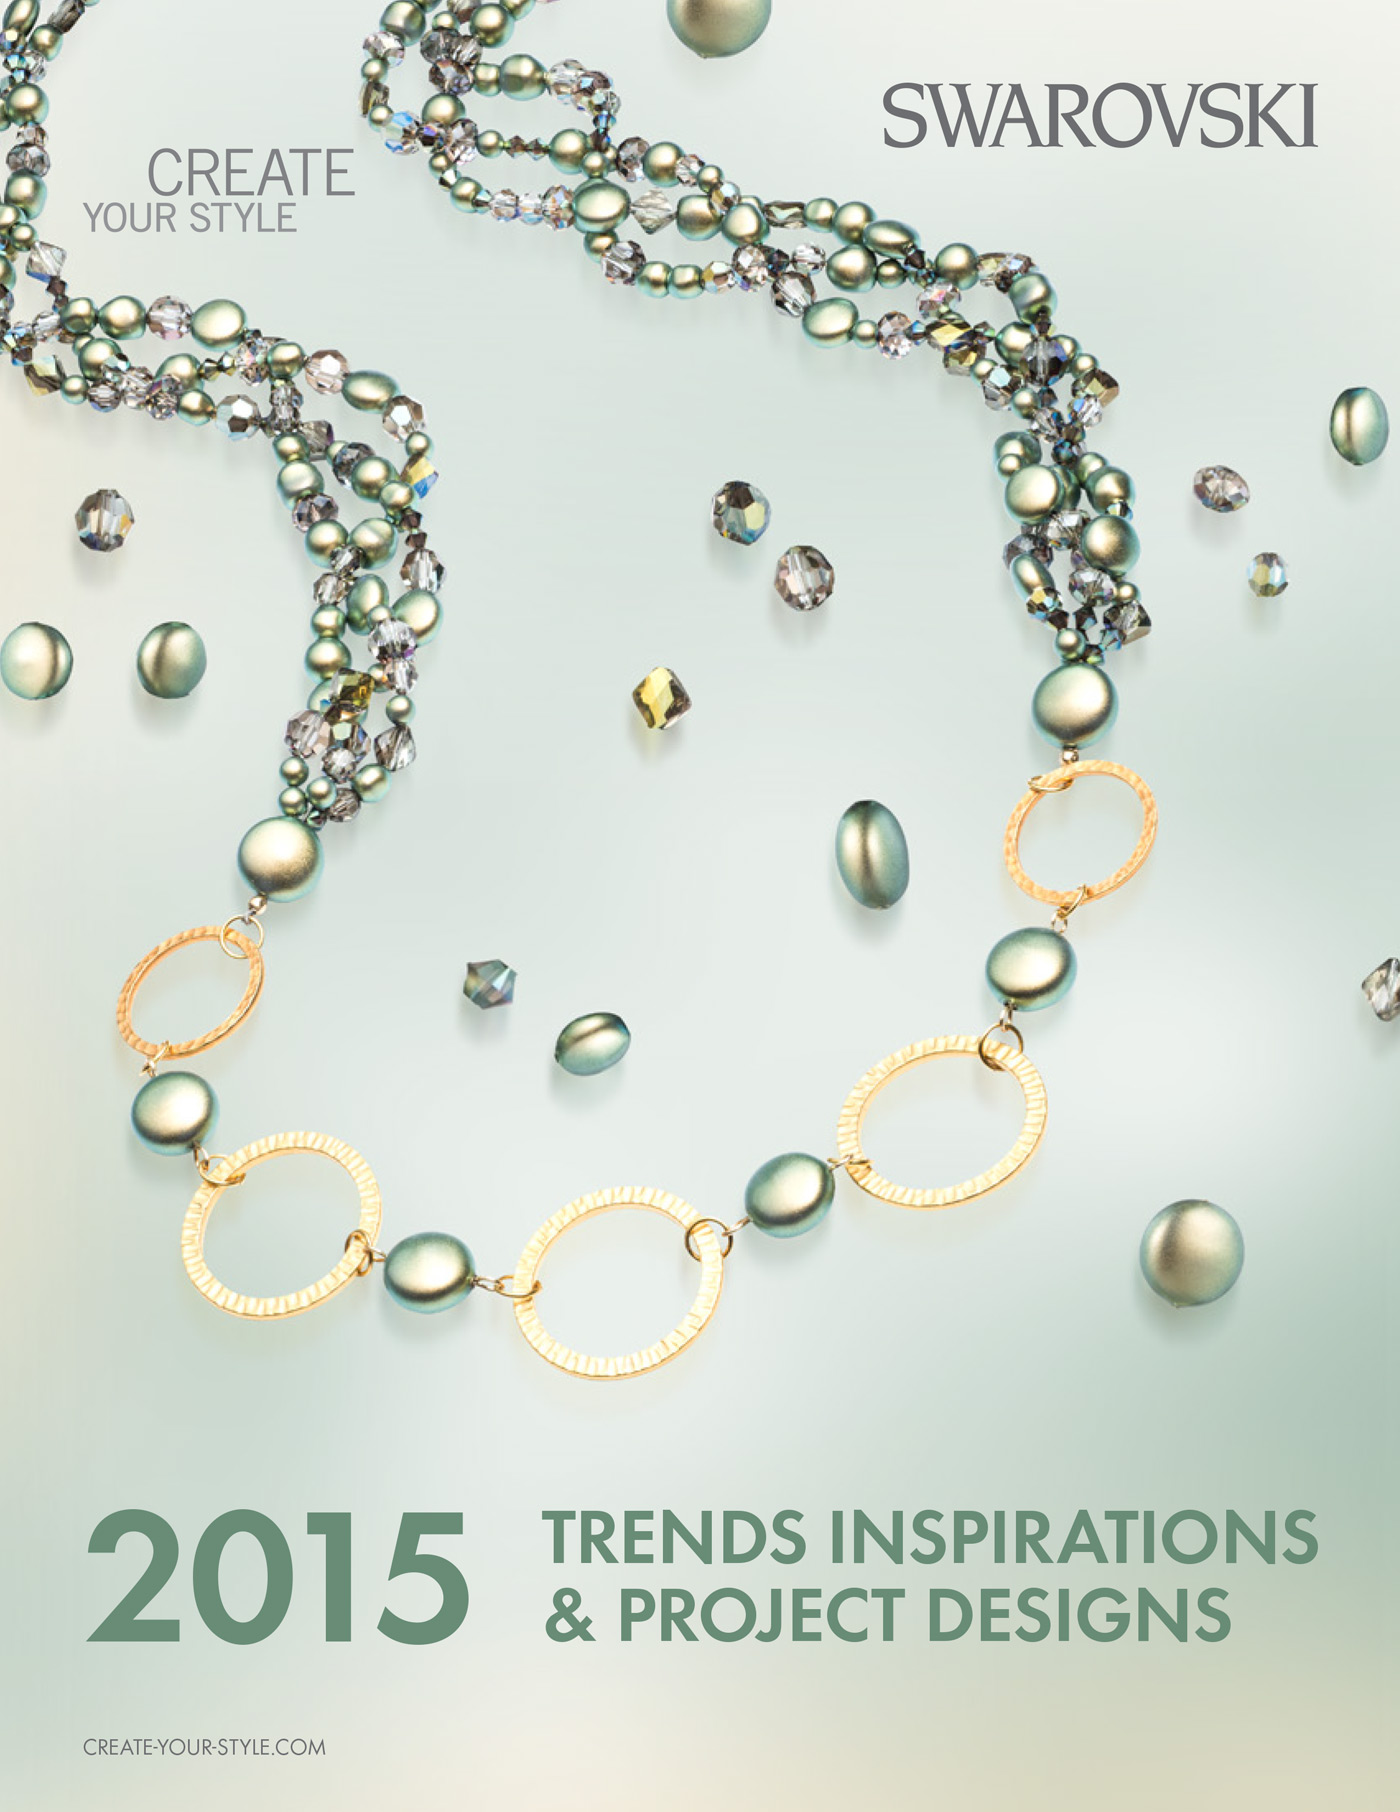 SWAROVSKI 2015 Trends Inspirations & Project Designs